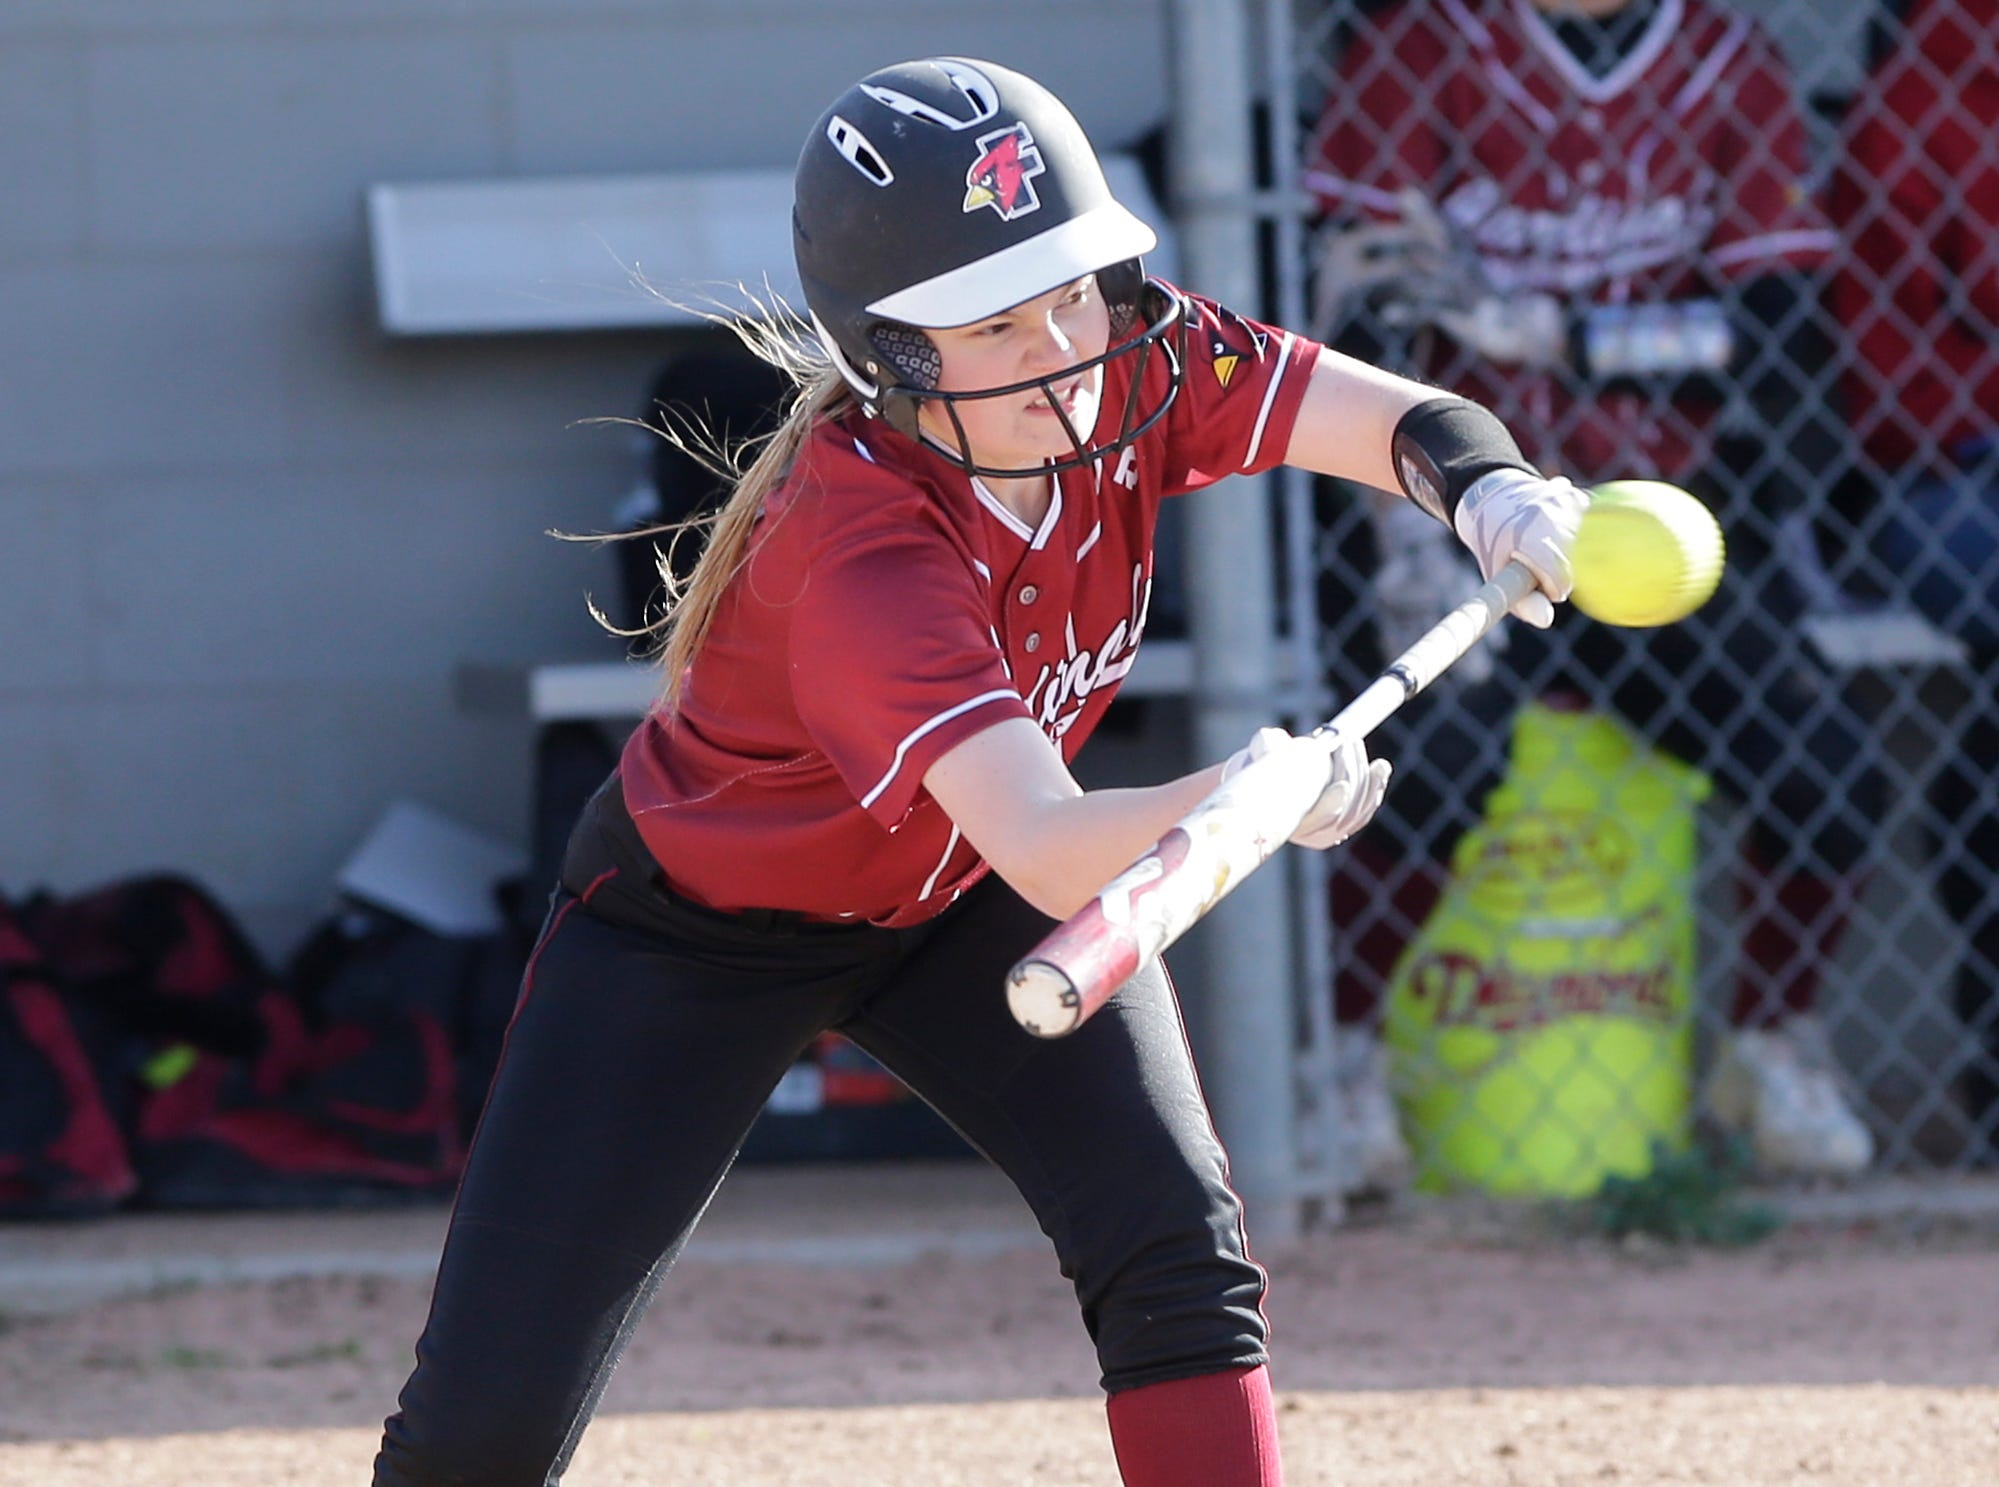 Fond du Lac High School softball's Ramzie Woelfel attempts a bunt against Oshkosh North High School during their game Friday, April 26, 2019 in Fond du Lac, Wis. Doug Raflik/USA TODAY NETWORK-Wisconsin